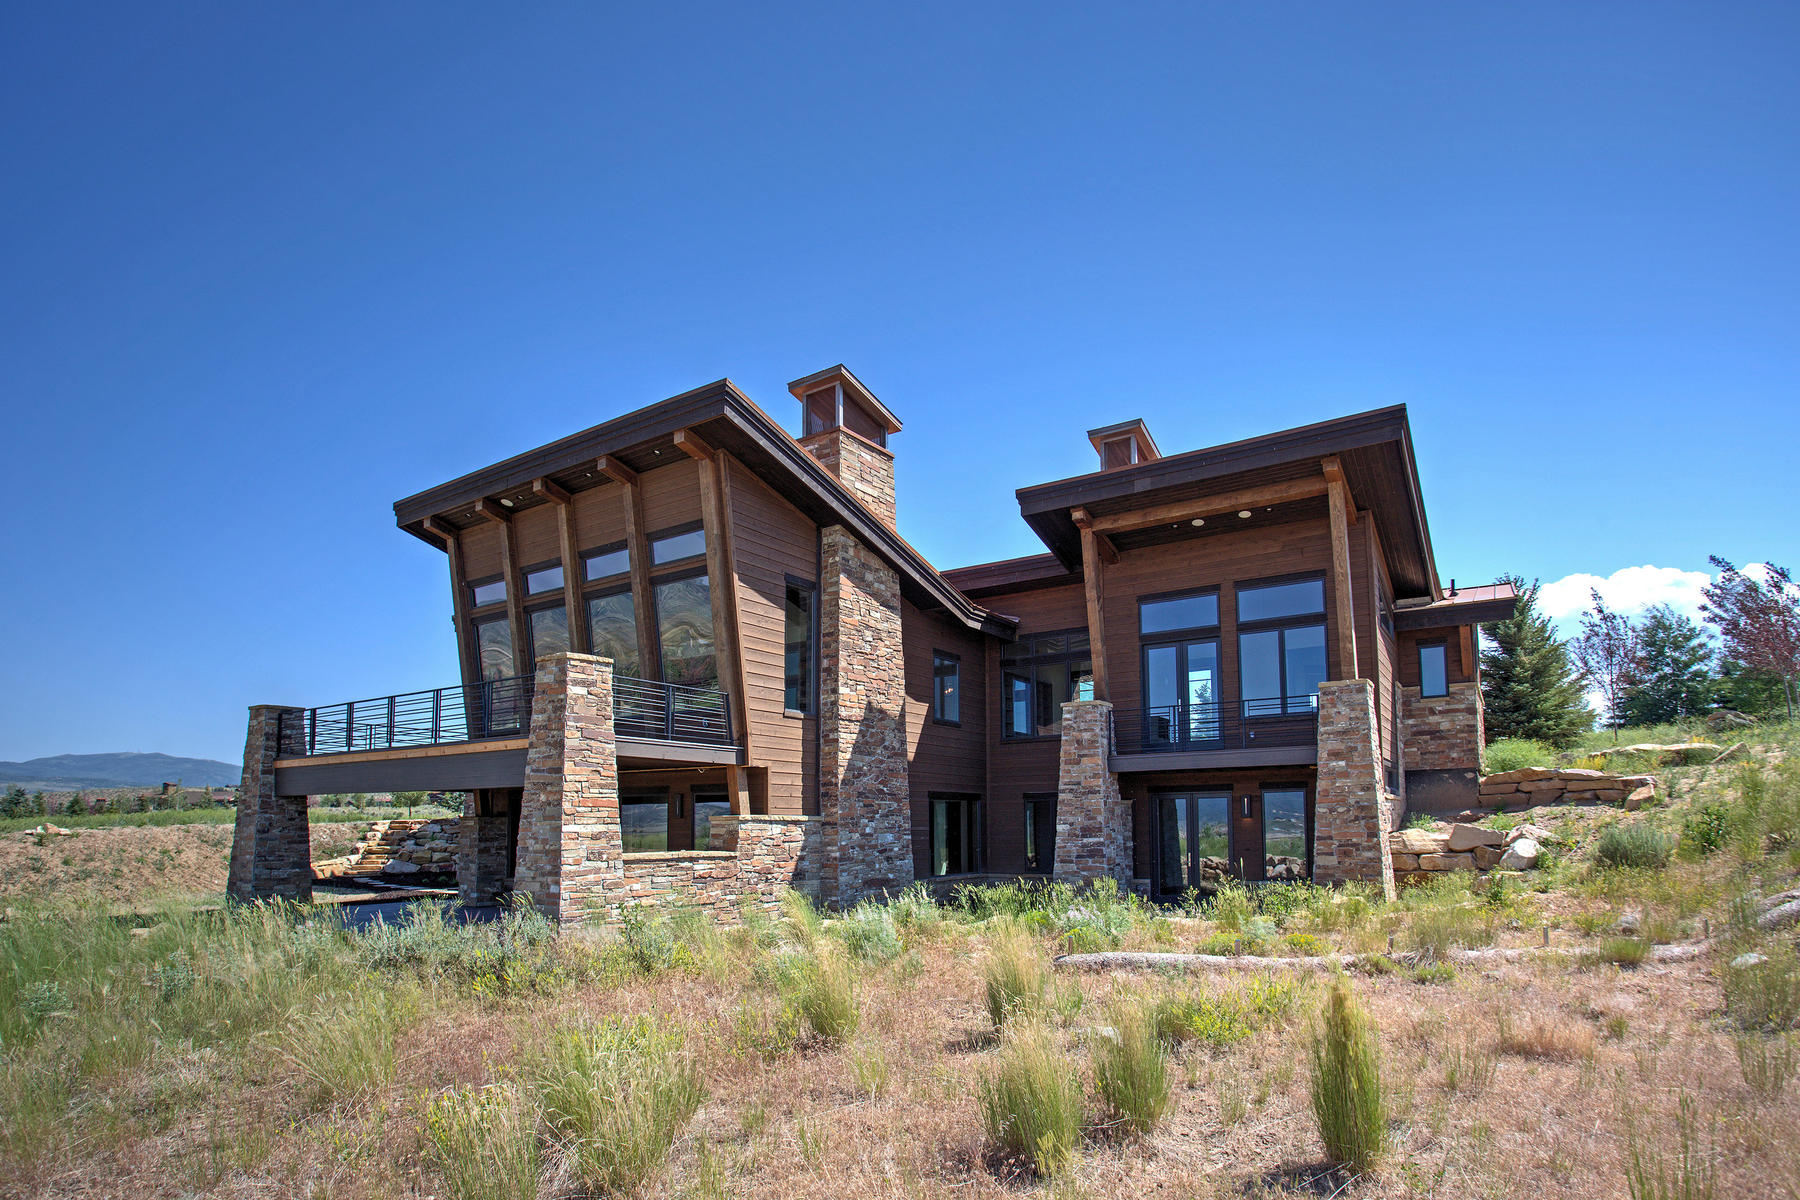 一戸建て のために 売買 アット New Construction in Promontory with Panoramic Views of Park City's Three Ski Res 6803 Cody Trail Park City, ユタ, 84098 アメリカ合衆国